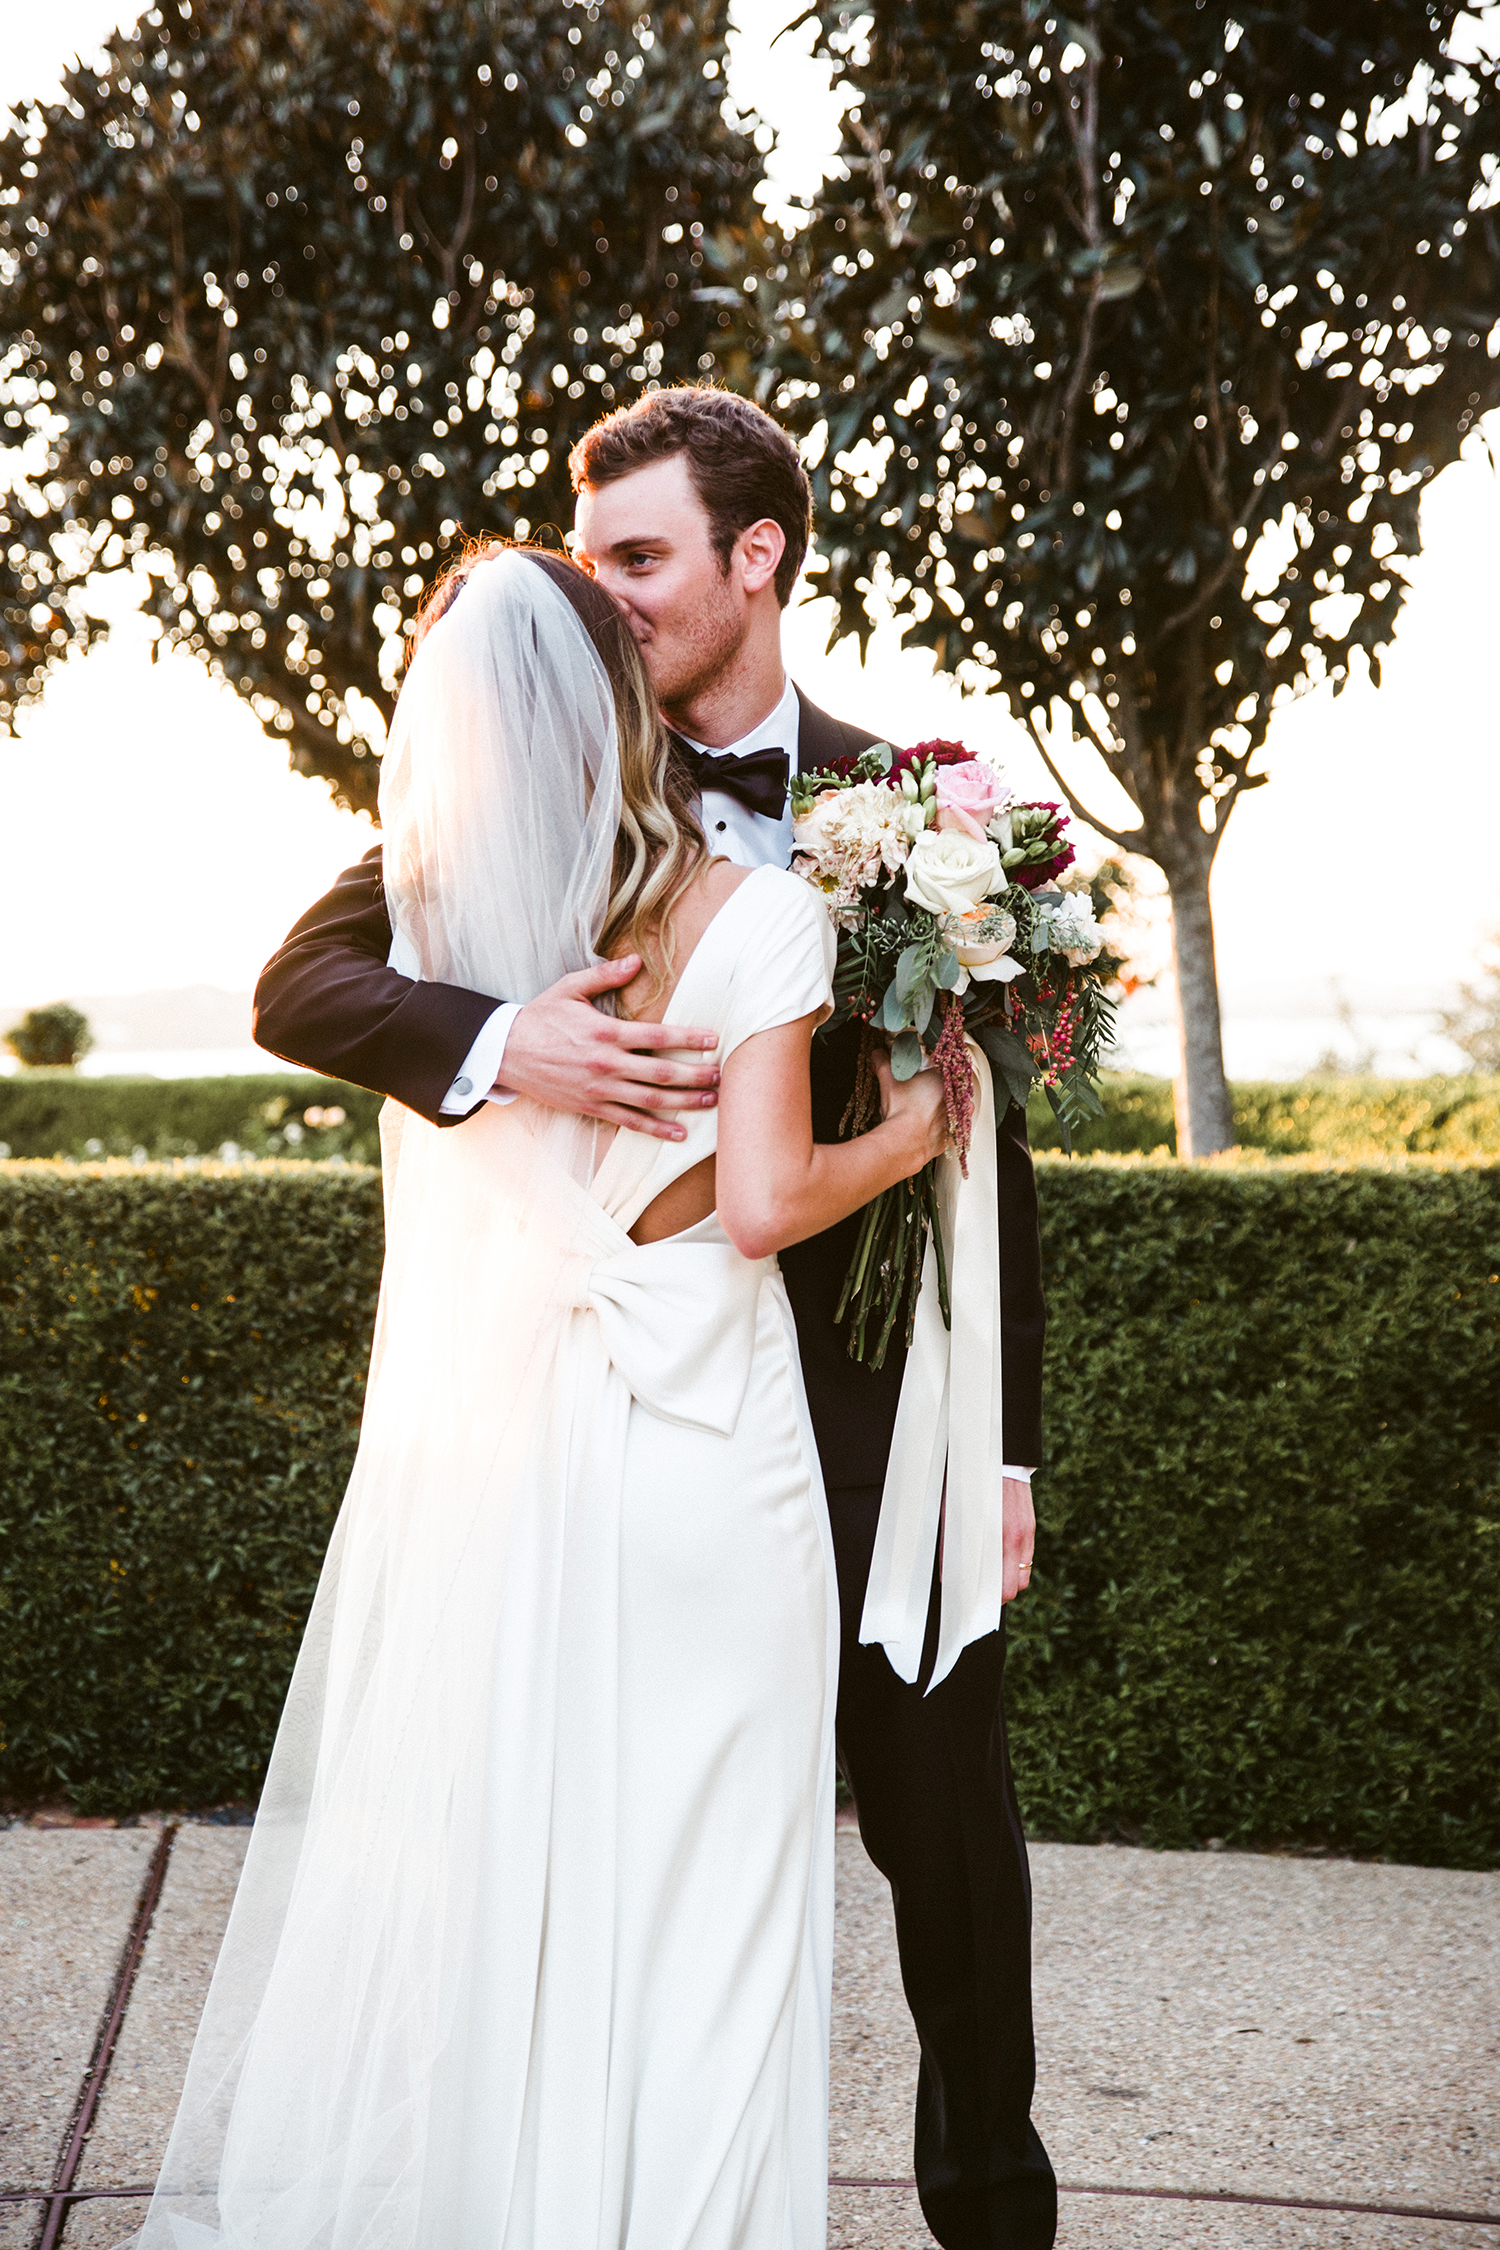 livvyland-blog-olivia-watson-wedding-villa-del-lago-austin-texas-fall-blush-burgundy-classic-romantic-wife-groom-love